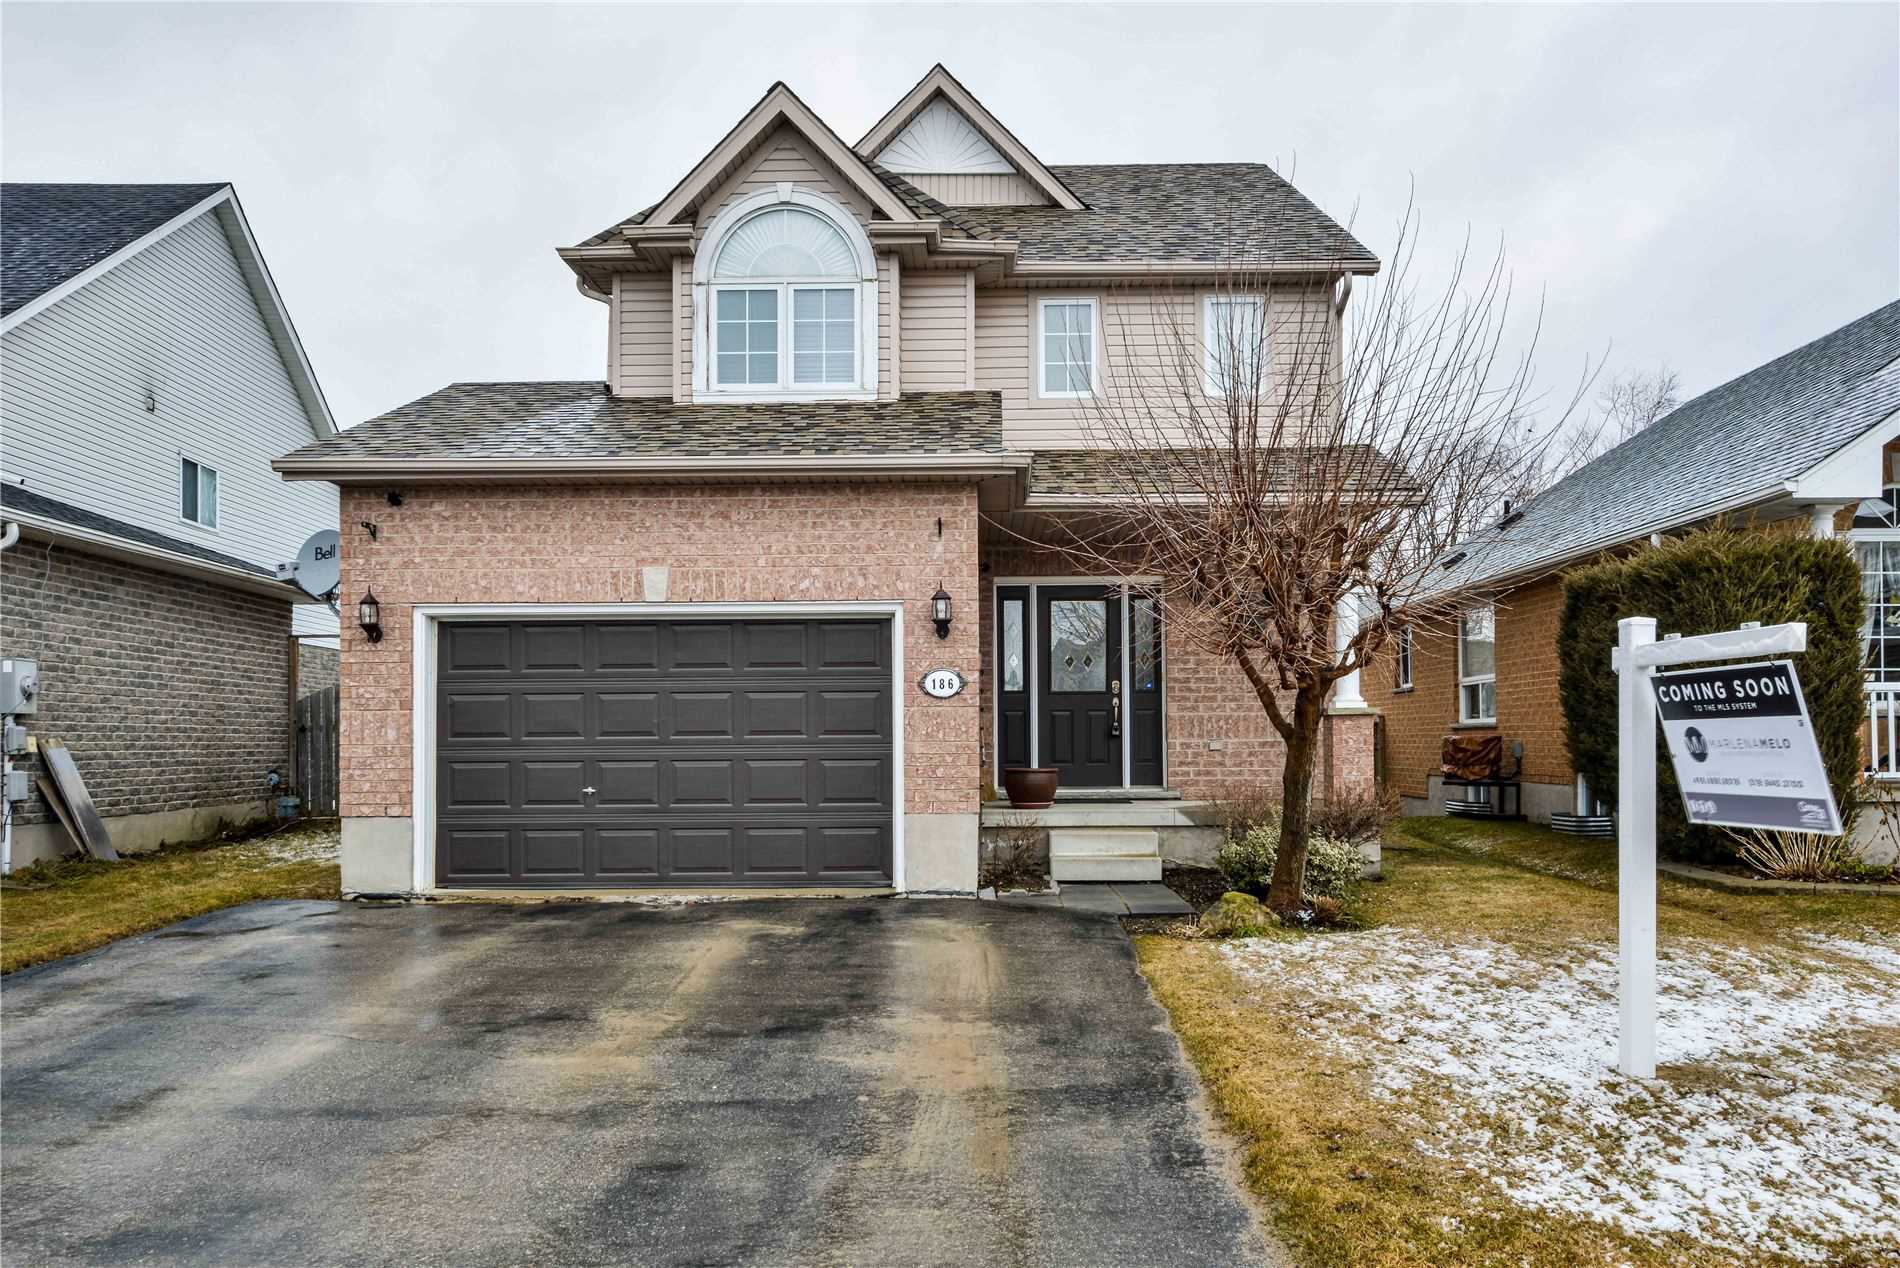 pictures of house for sale MLS: X4726228 located at 186 Franklyn St, Shelburne L9V3C3